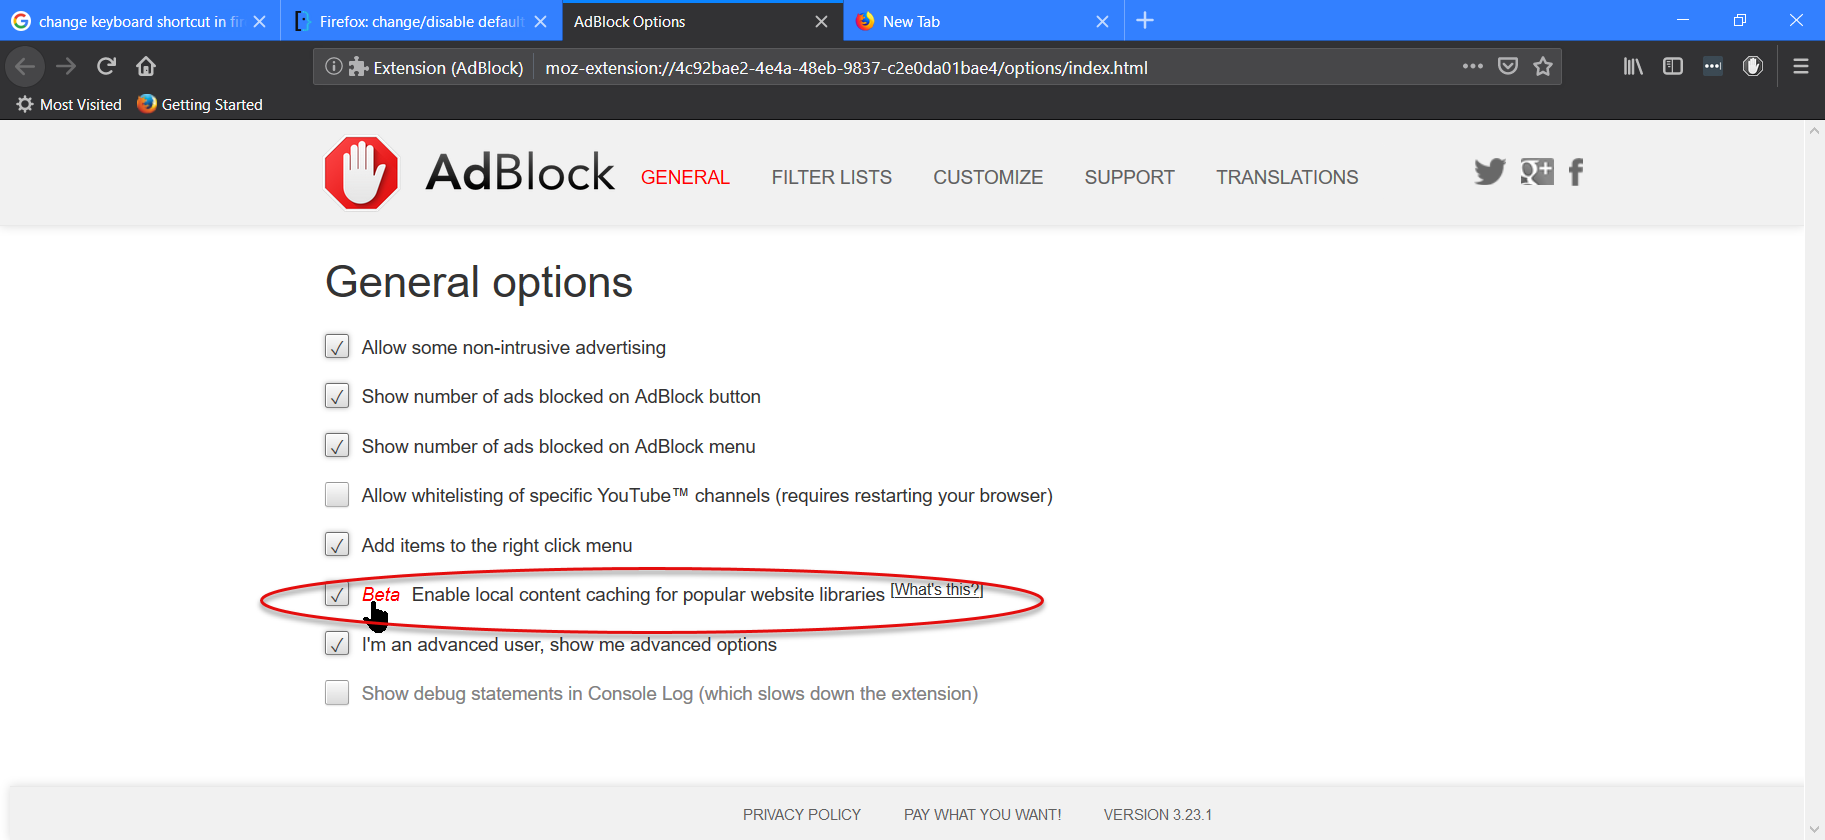 Disable local content caching in AdBlock's options